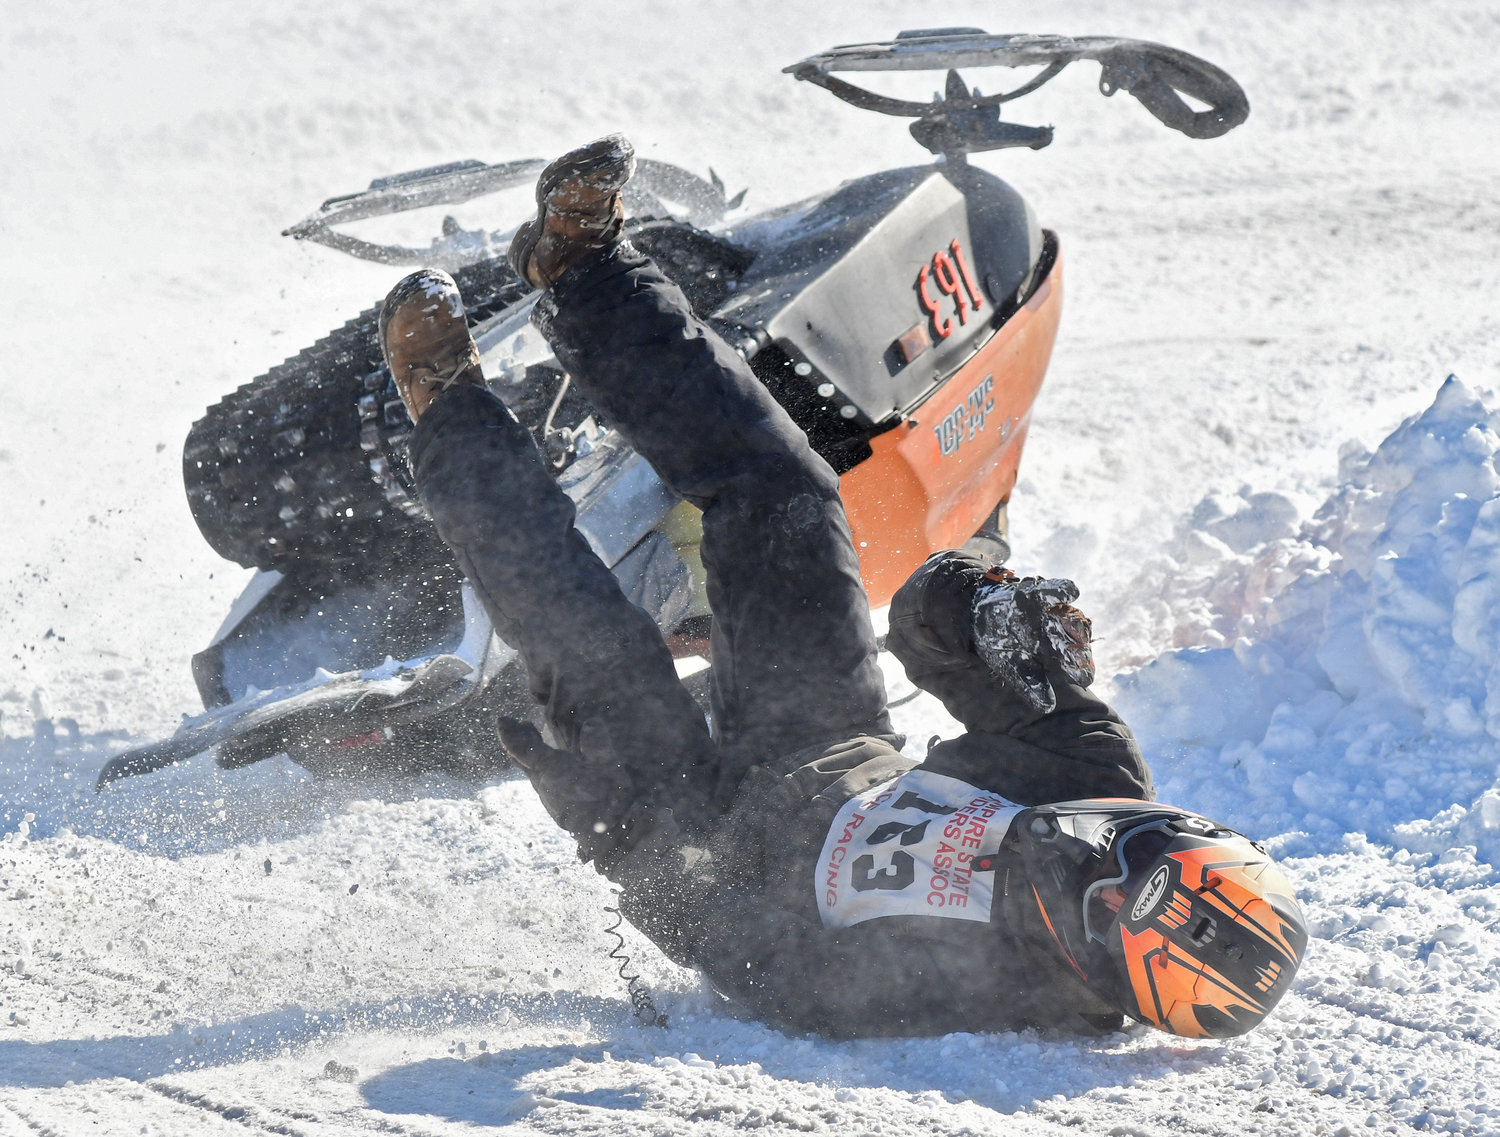 CRASH LANDING — Anthony Brownell from Tupper Lake lands after going upside down during the Old Dog Races in Taberg on Saturday afternoon. Snowmobilers from across the region gathered at the event to race vintage snowmobiles.